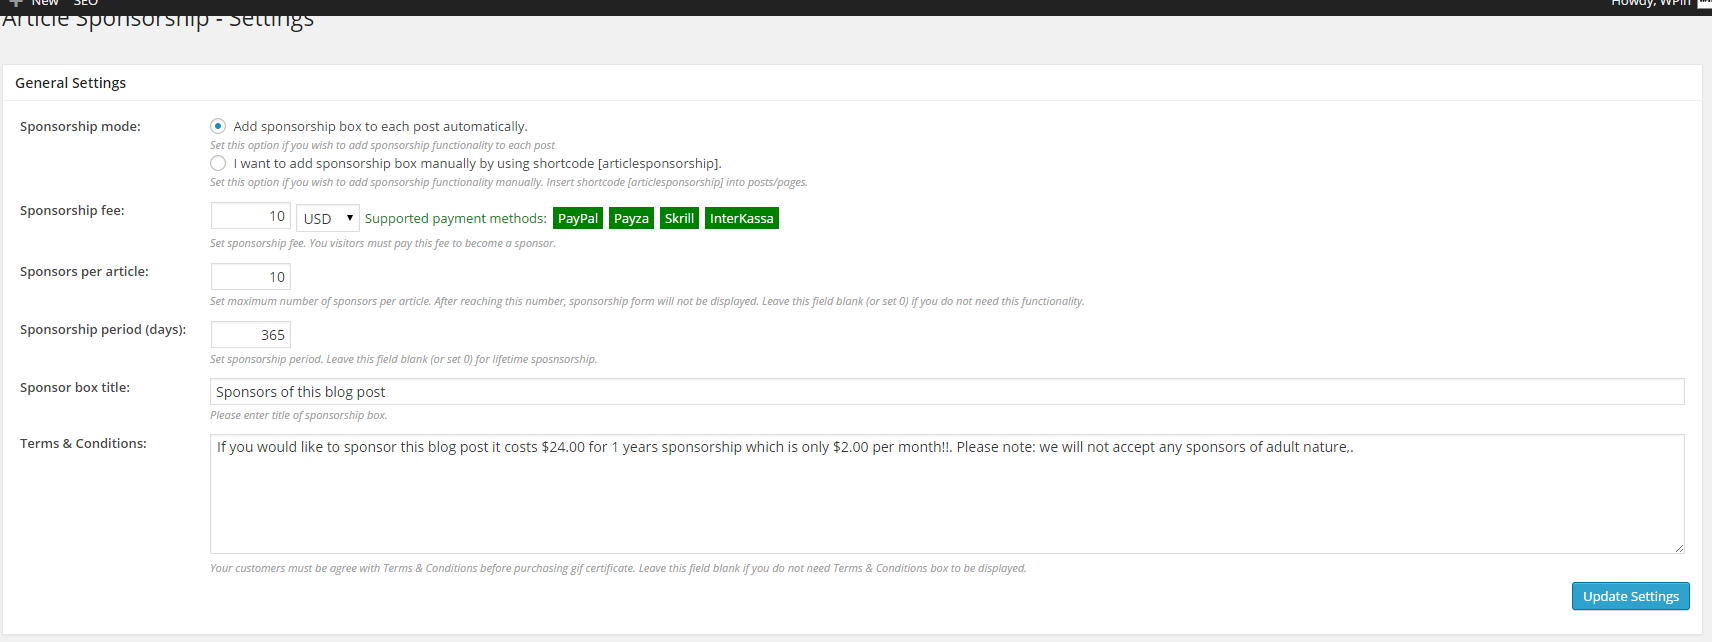 Article Sponsorship Plugin Review - The Settings page